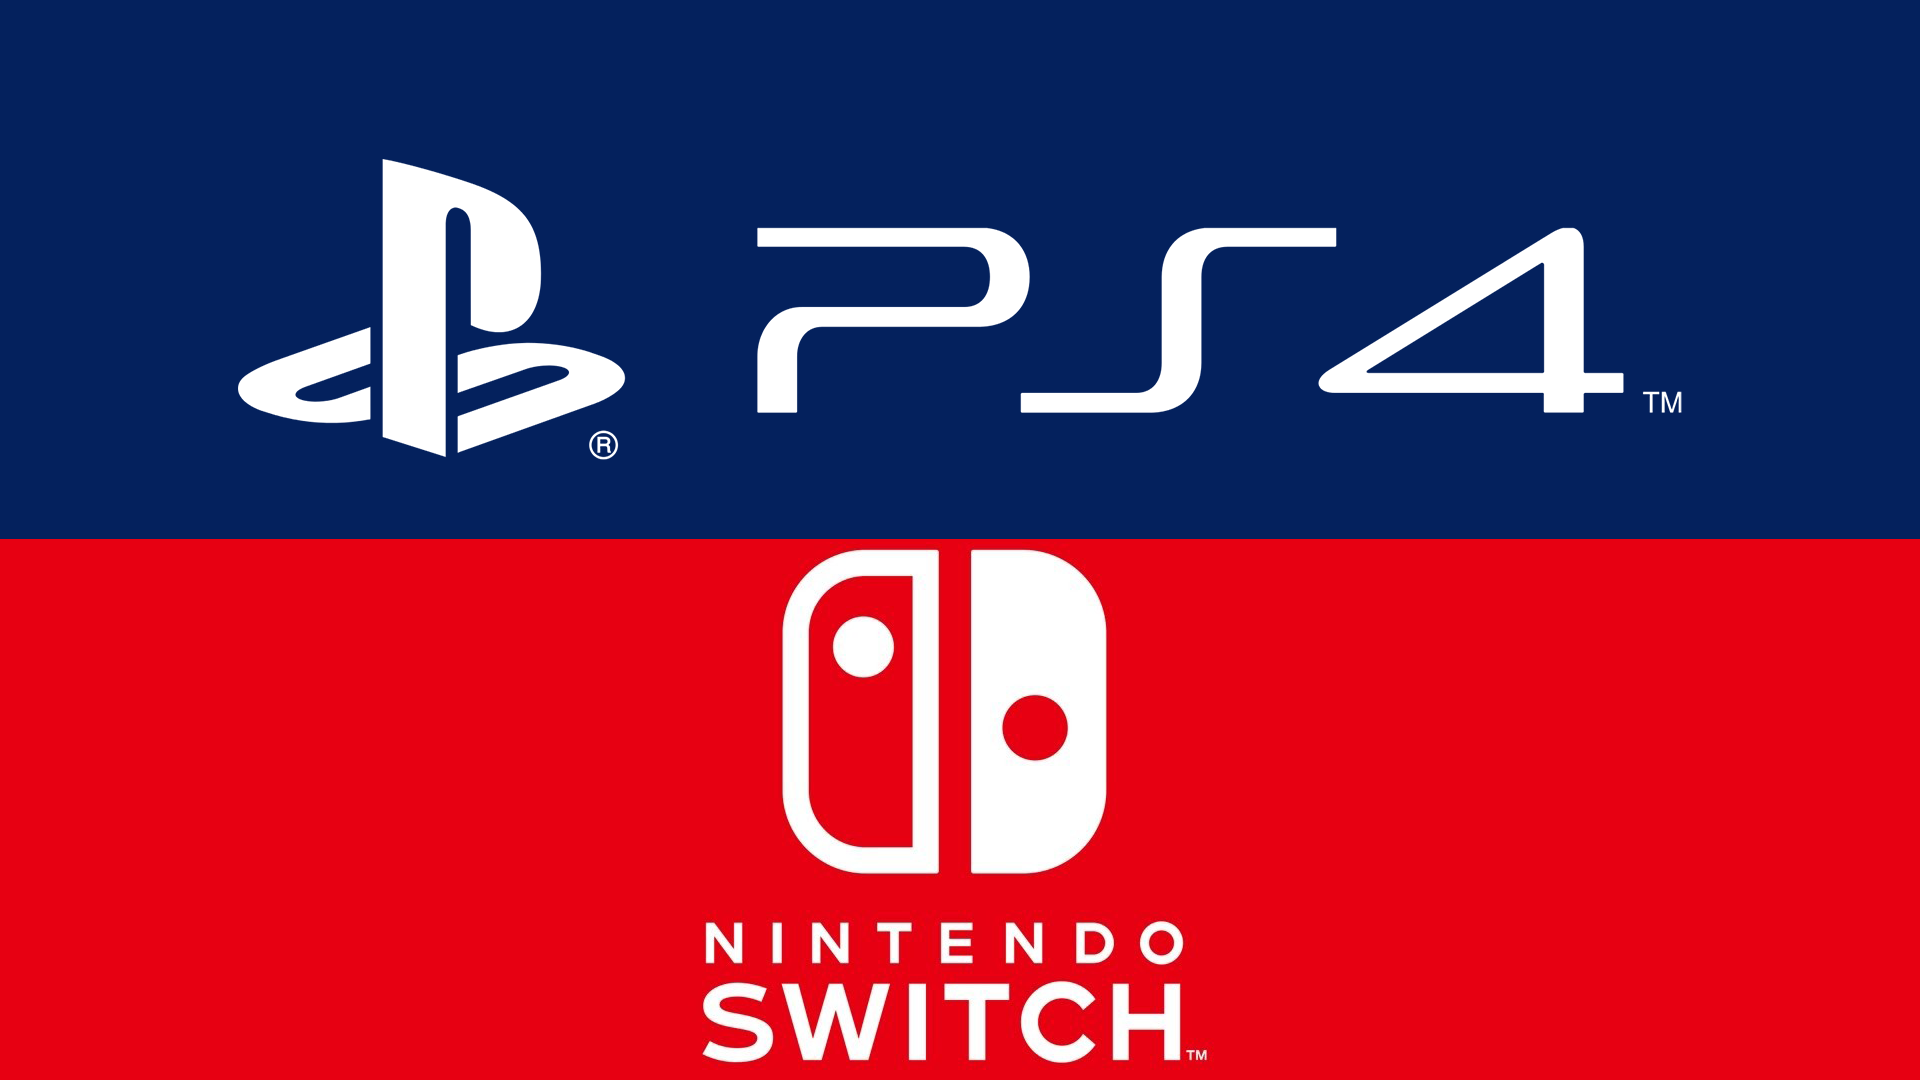 http://cdn4.dualshockers.com/wp-content/uploads/2016/11/PS4Switch.png